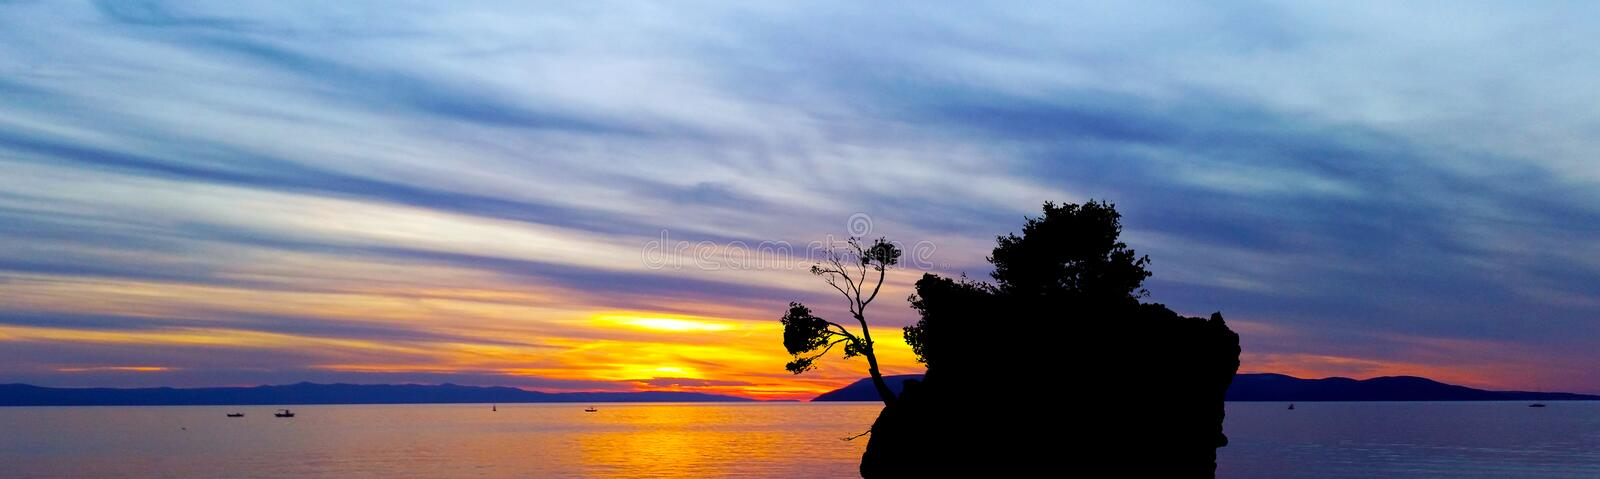 Dramatic sunset over the Adriatic Sea with Kamen Brela - Tiny famous island in Brela royalty free stock images